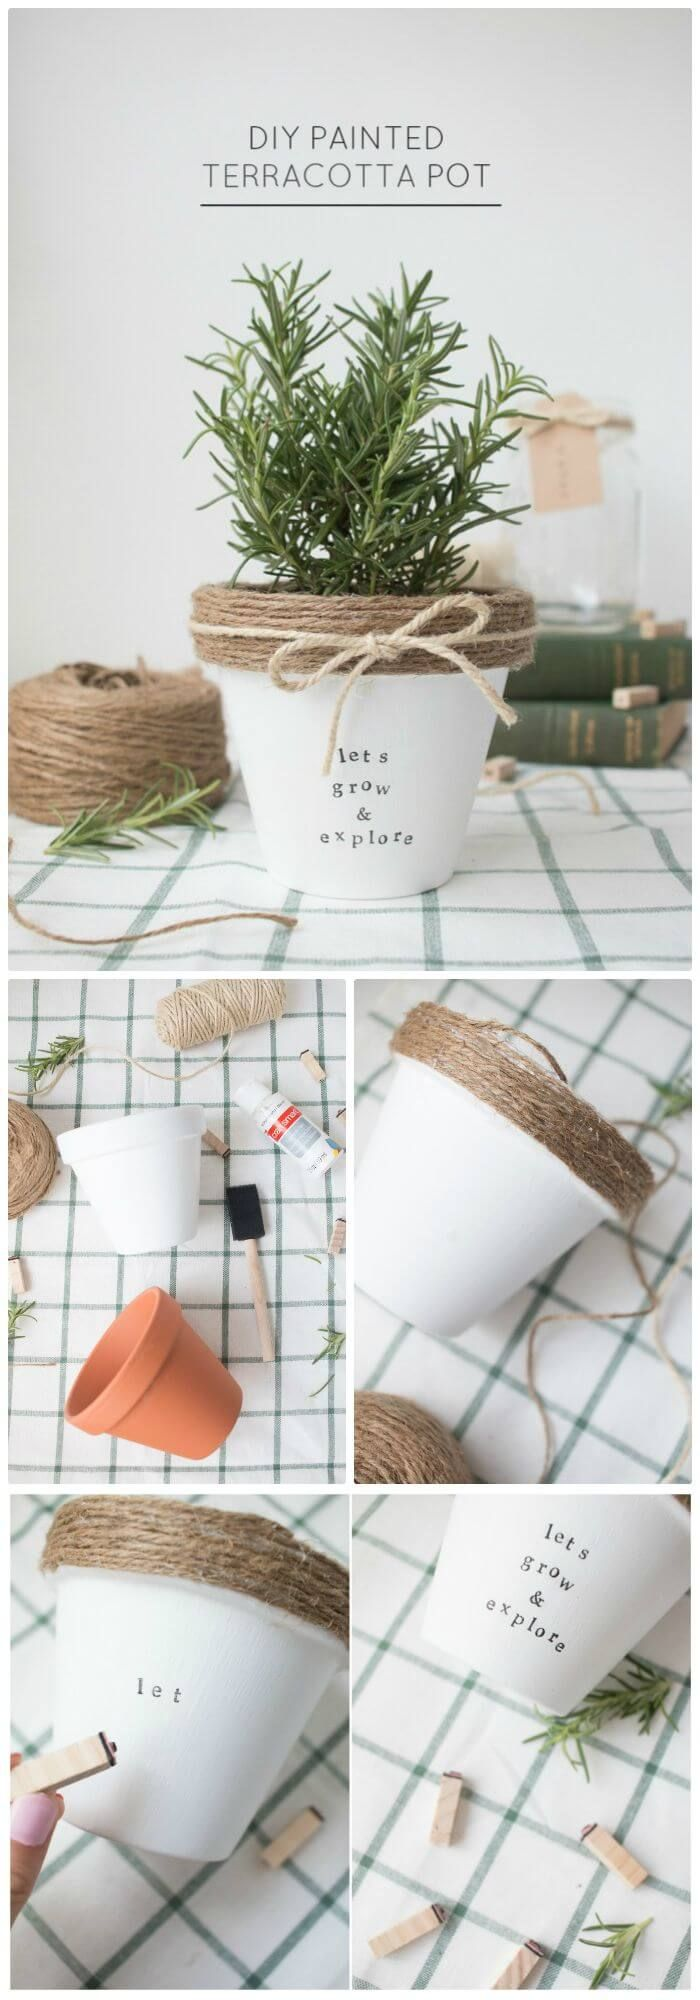 200 Cheap And Easy Dollar Store Crafts That You can DIY